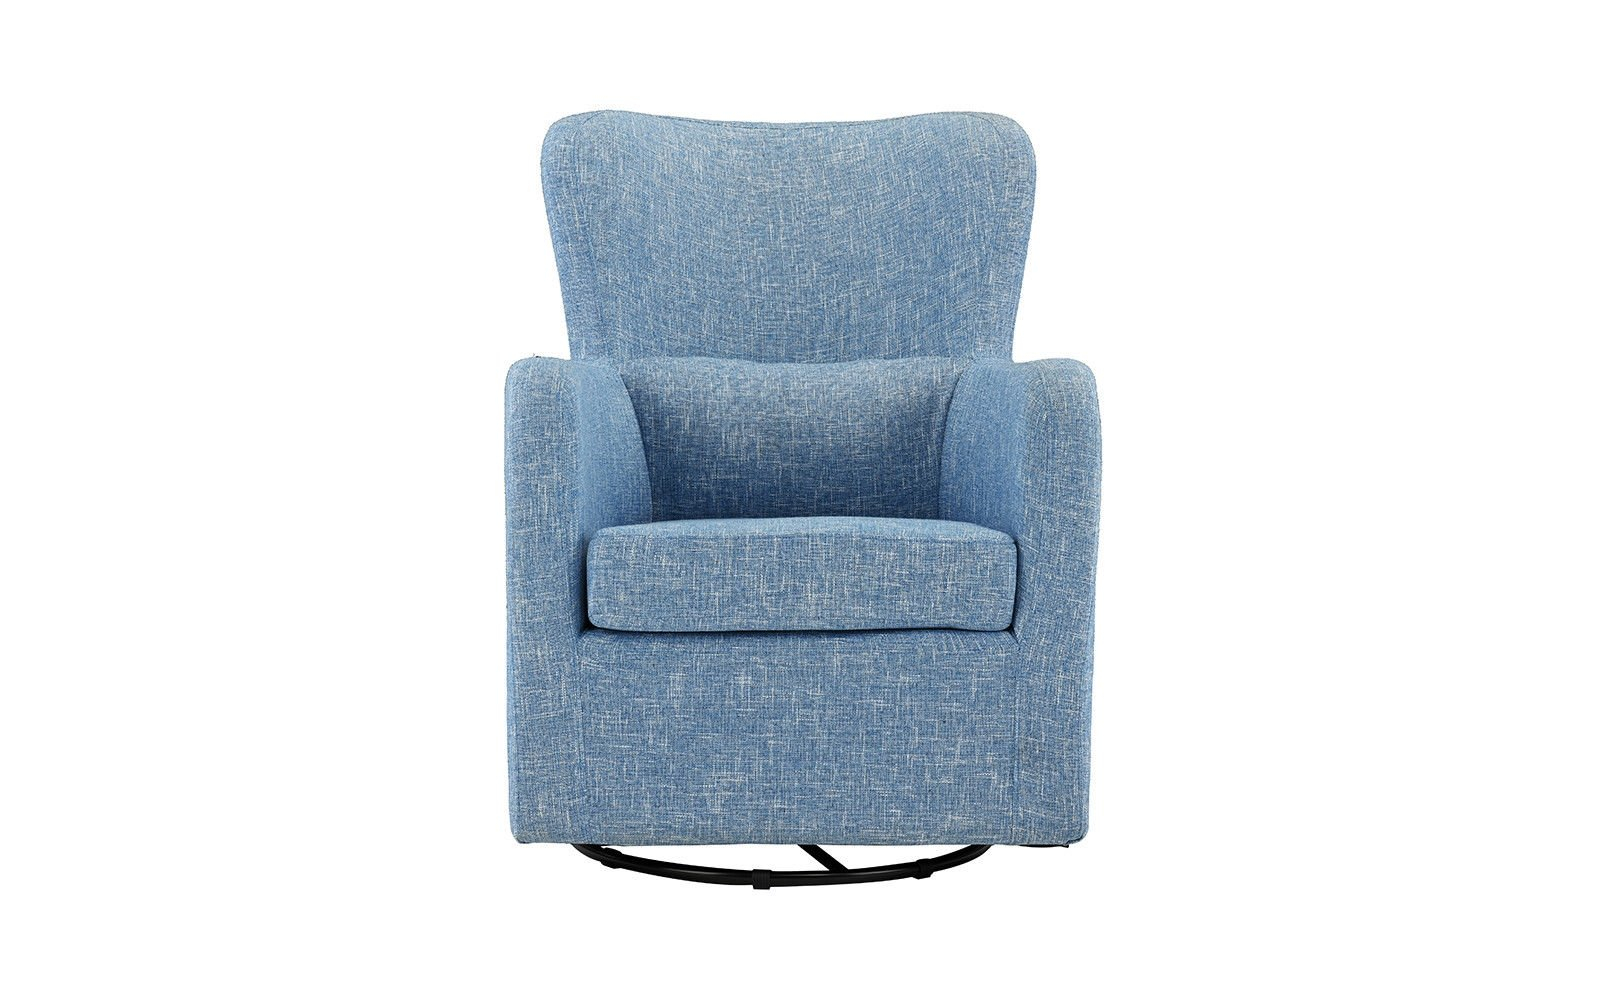 Living Room Home Decor Armchair Rotating Swivel Accent Chair, Linen In Umber Grey Swivel Accent Chairs (View 16 of 25)